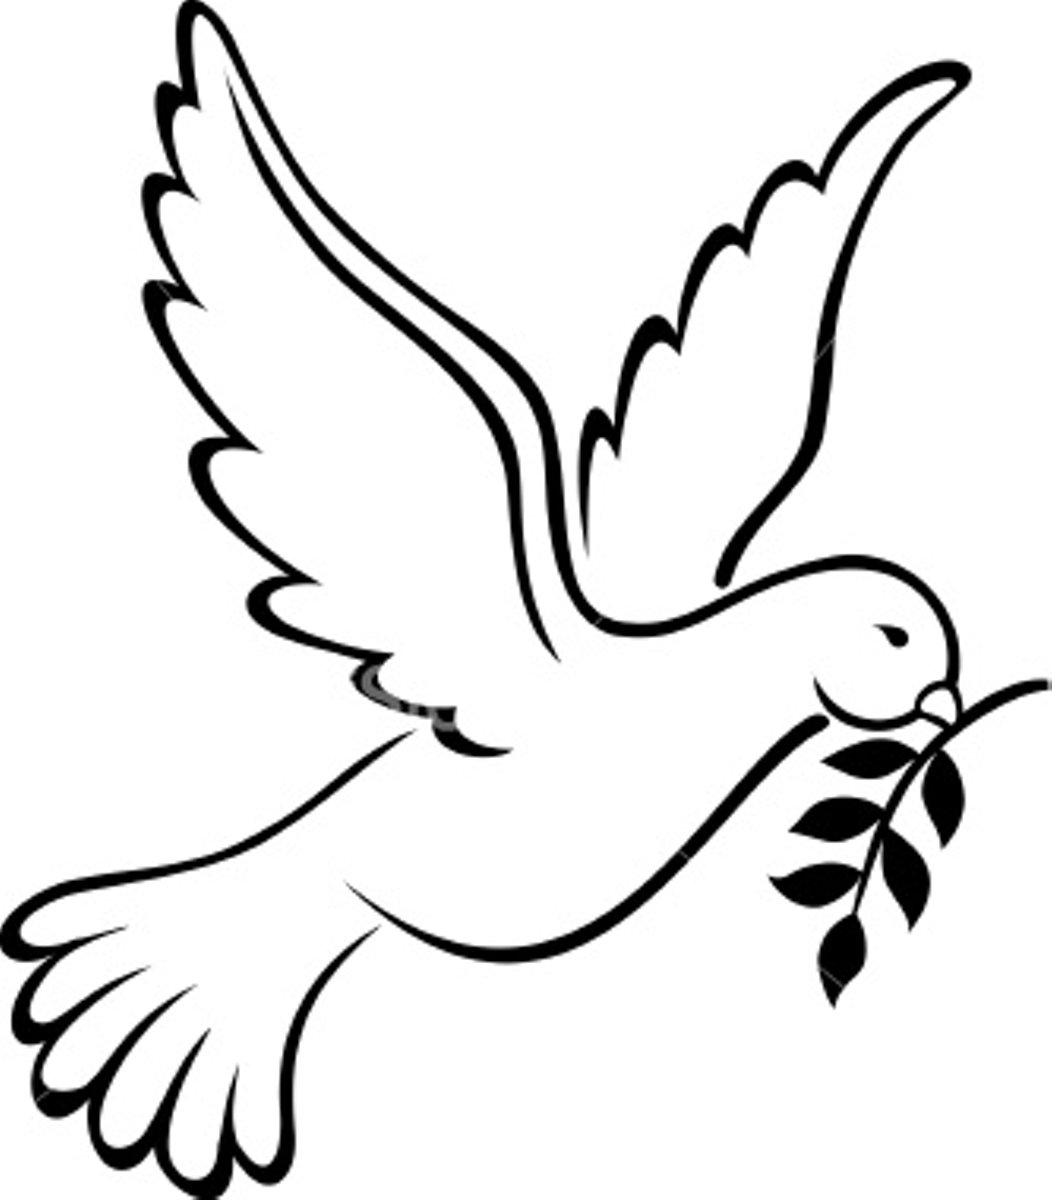 Line Art Dove : Confirmation symbols dove clipart best